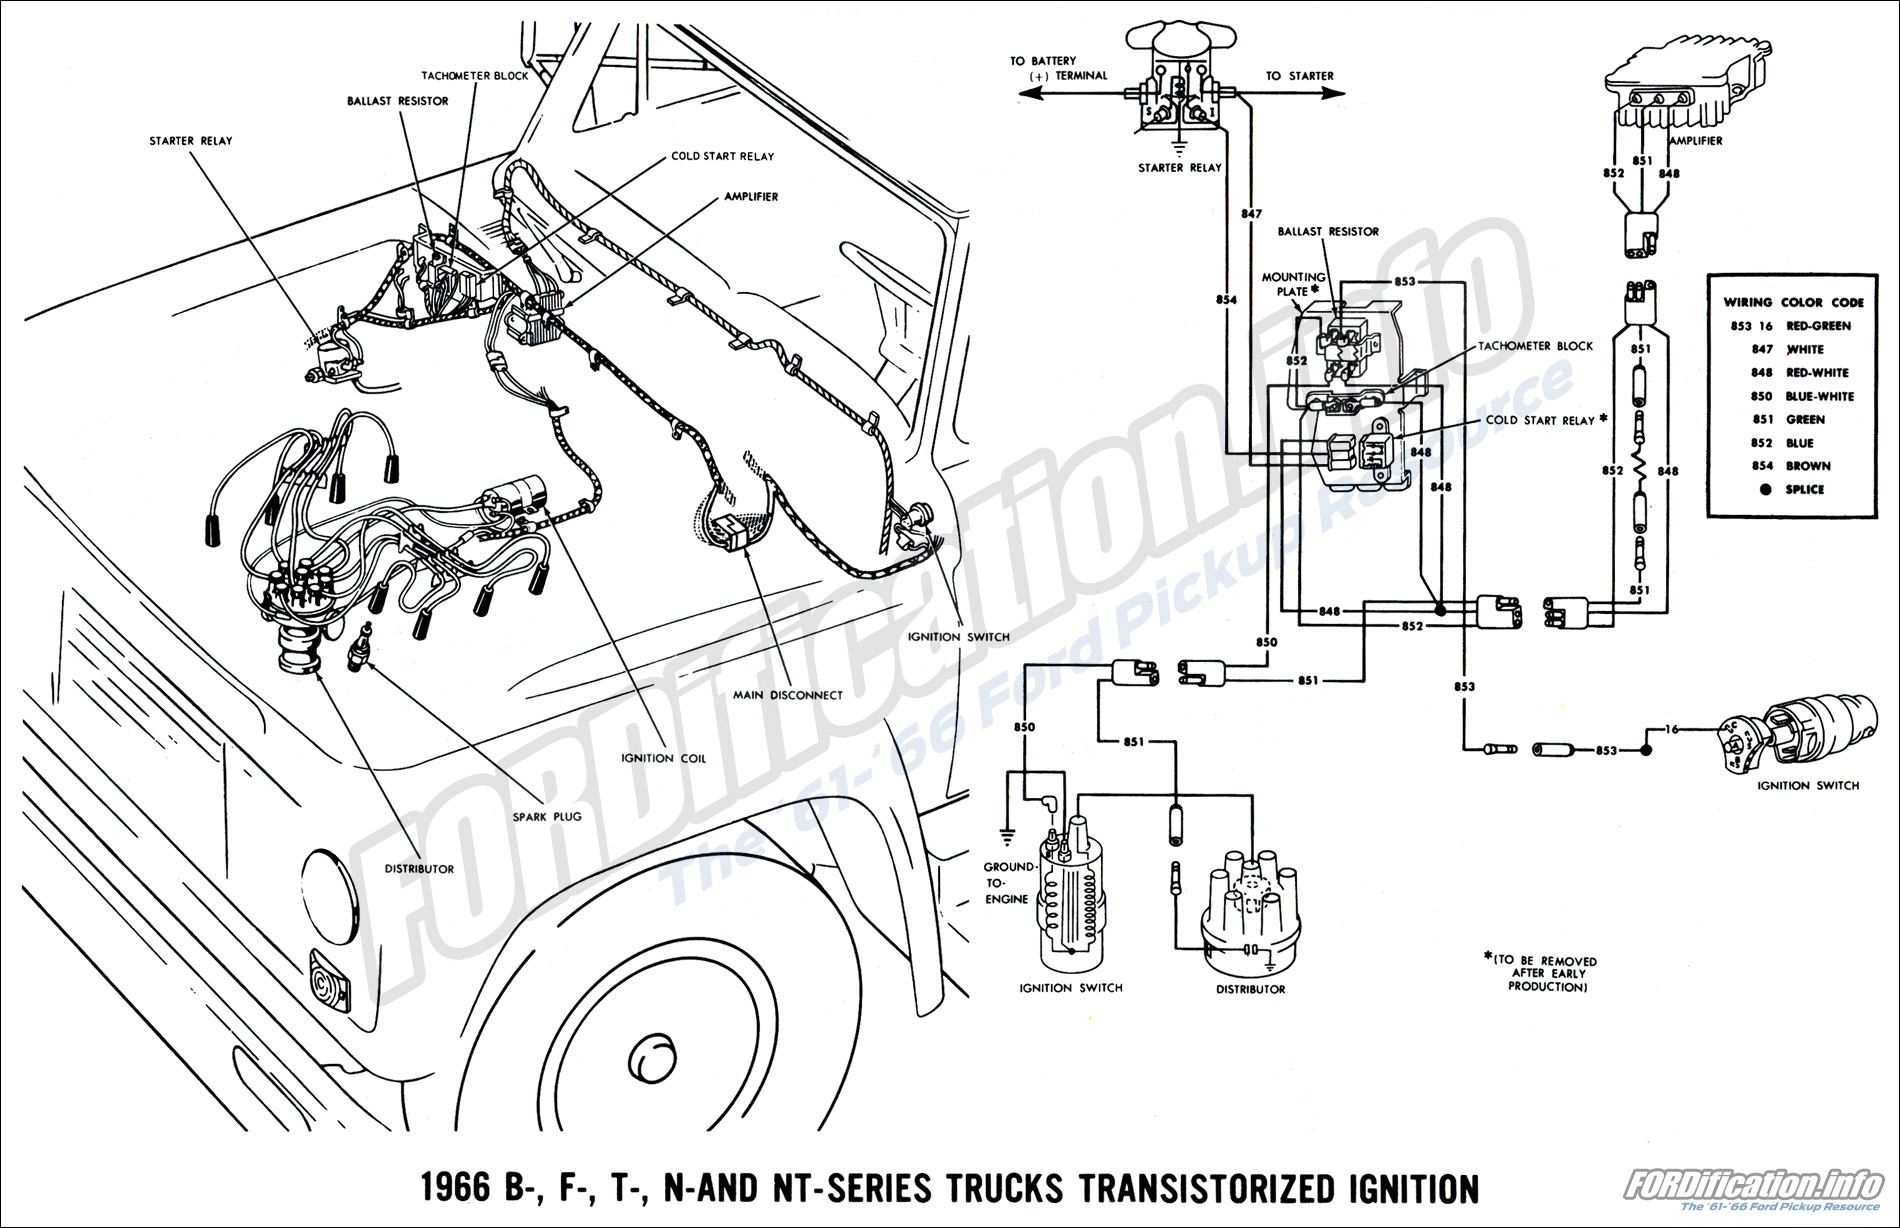 1966 Ford Truck Wiring Diagrams Fordification Info The '61 '66 1955 Ford  F100 Wiring Diagram 1966 Ford F 250 Wiring Diagram